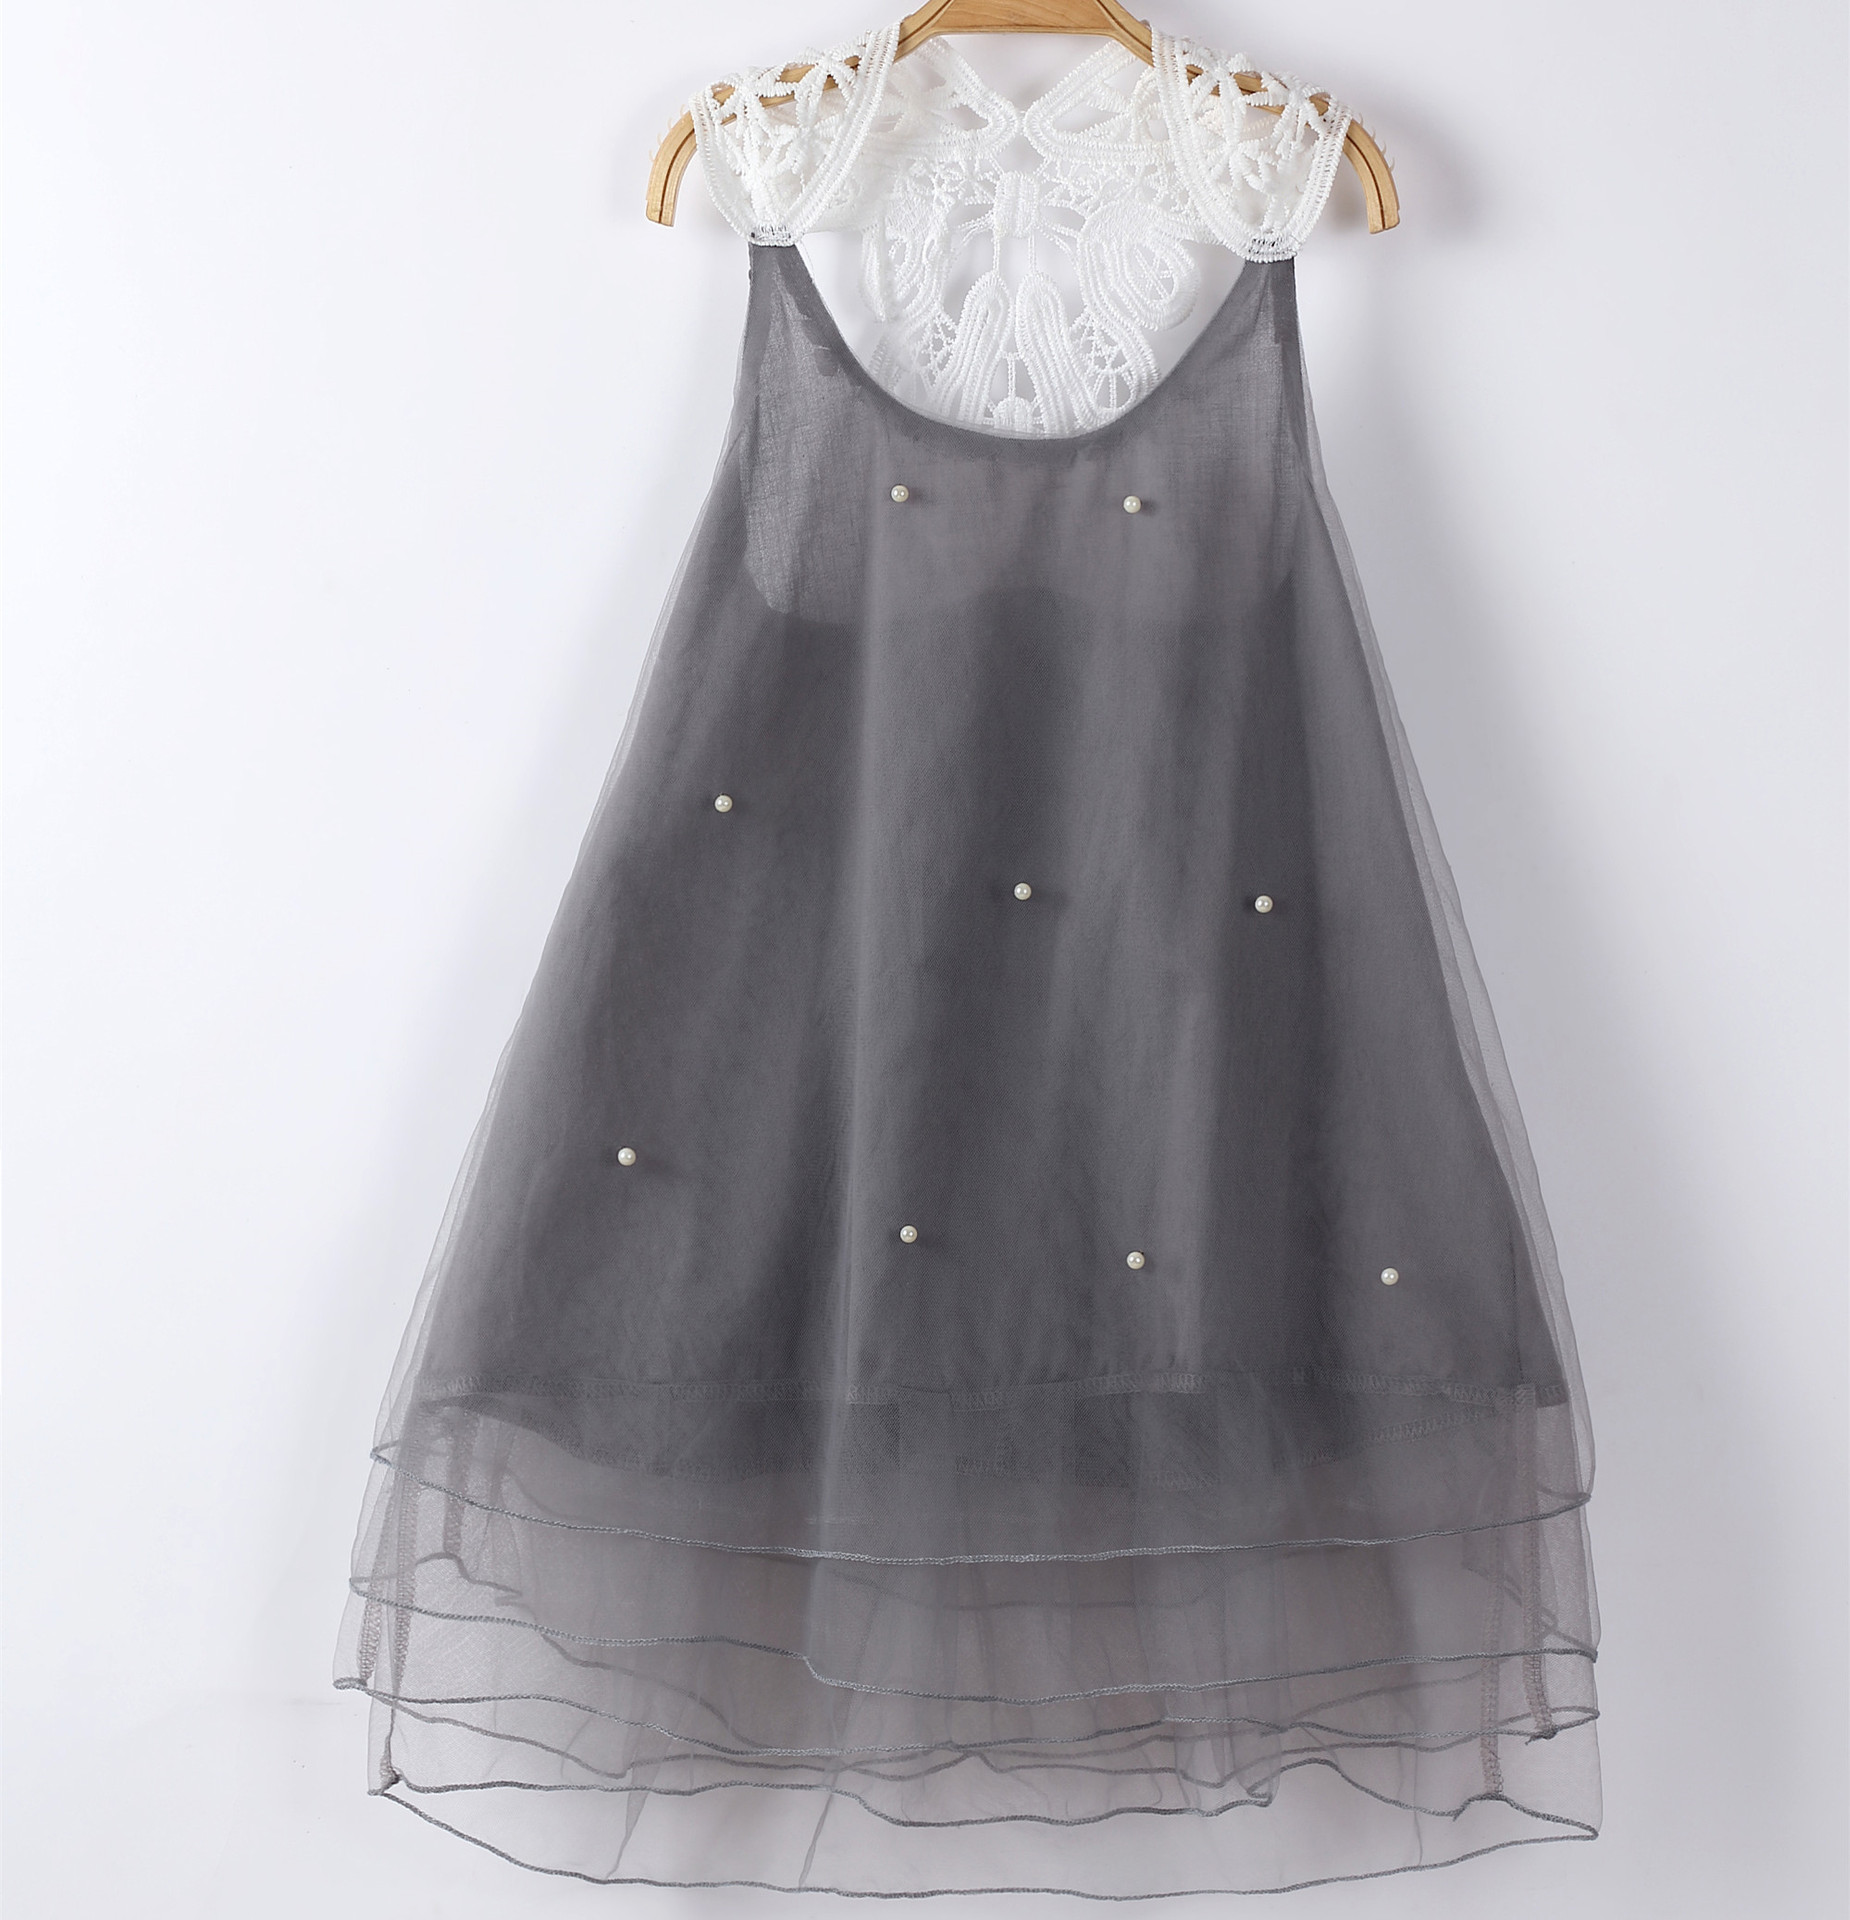 2020 New Summer Pearl Girls Lace Dress Gauze Princess Dress Baby Girls Clothes Wedding Flower Girls Lace Dress 1-8Y Clothes